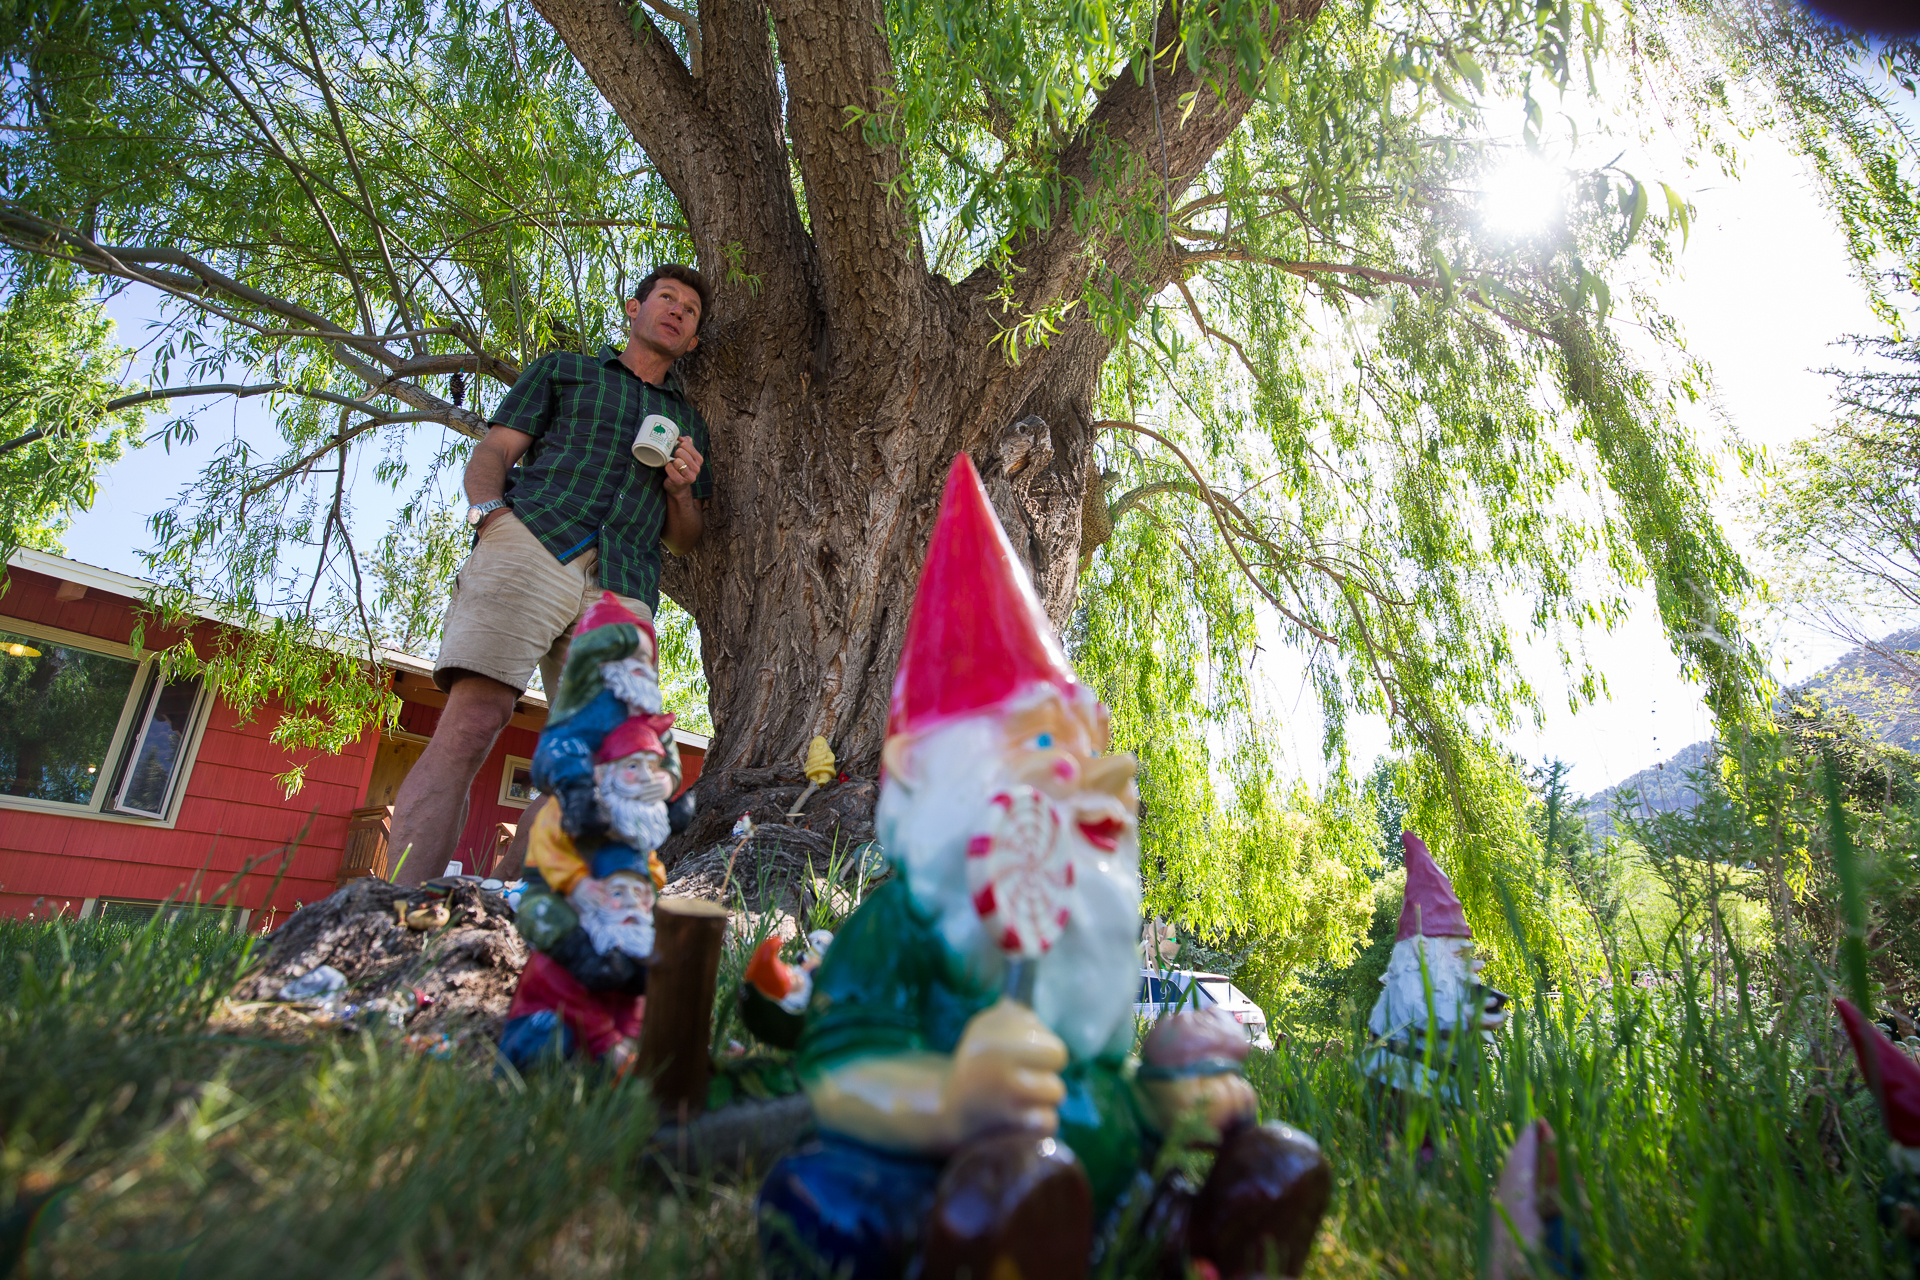 Schendler feels compelled to work on climate, though he'd prefer to just hang out in Gnome Building Zones. PHOTO: Tom Zuccareno